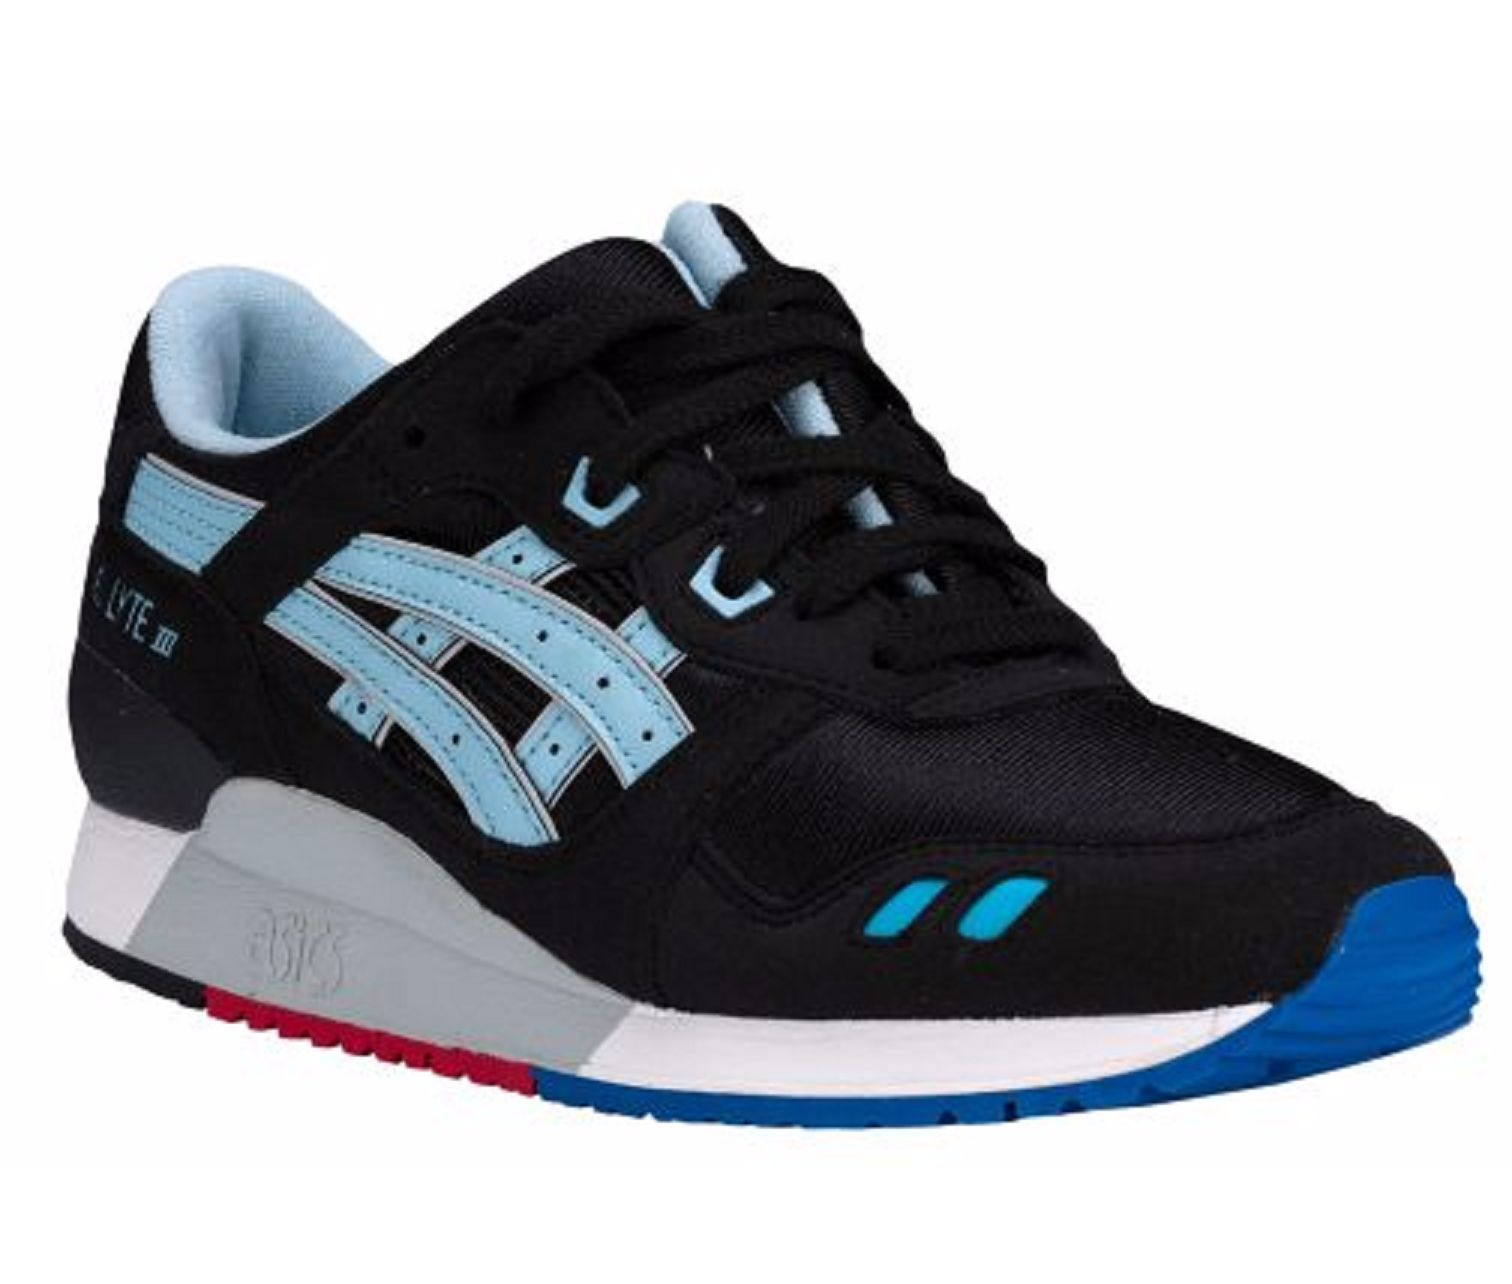 Asics C5A4N 9040 GEL Lyte III GS Retro Black Blue Big Kid Running ... e5a8acb2119